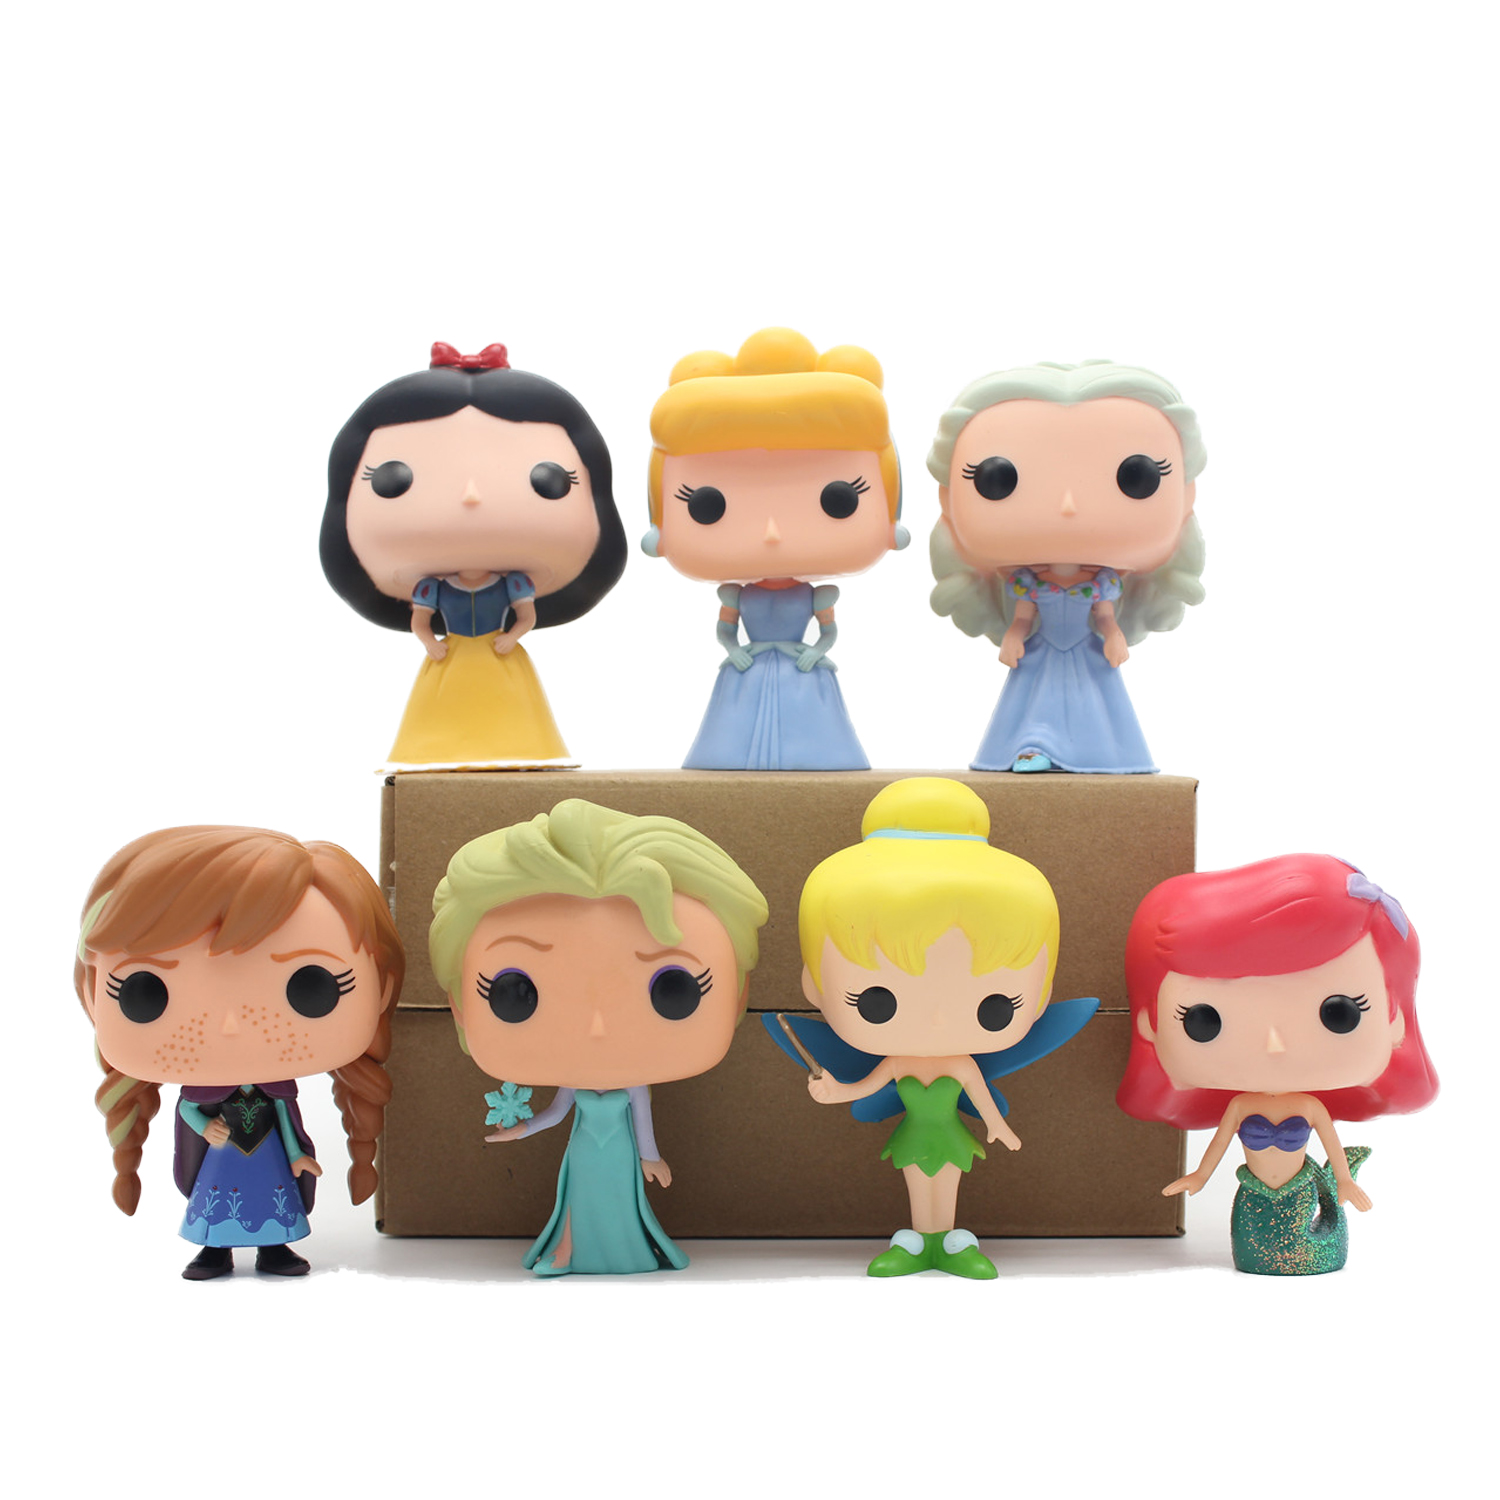 Chanycore Funko pop Princess Cinderella Tinker Bell Ariel Snow White PVC Movie Vinyl Cute Action Figure Collection Gifts Toys